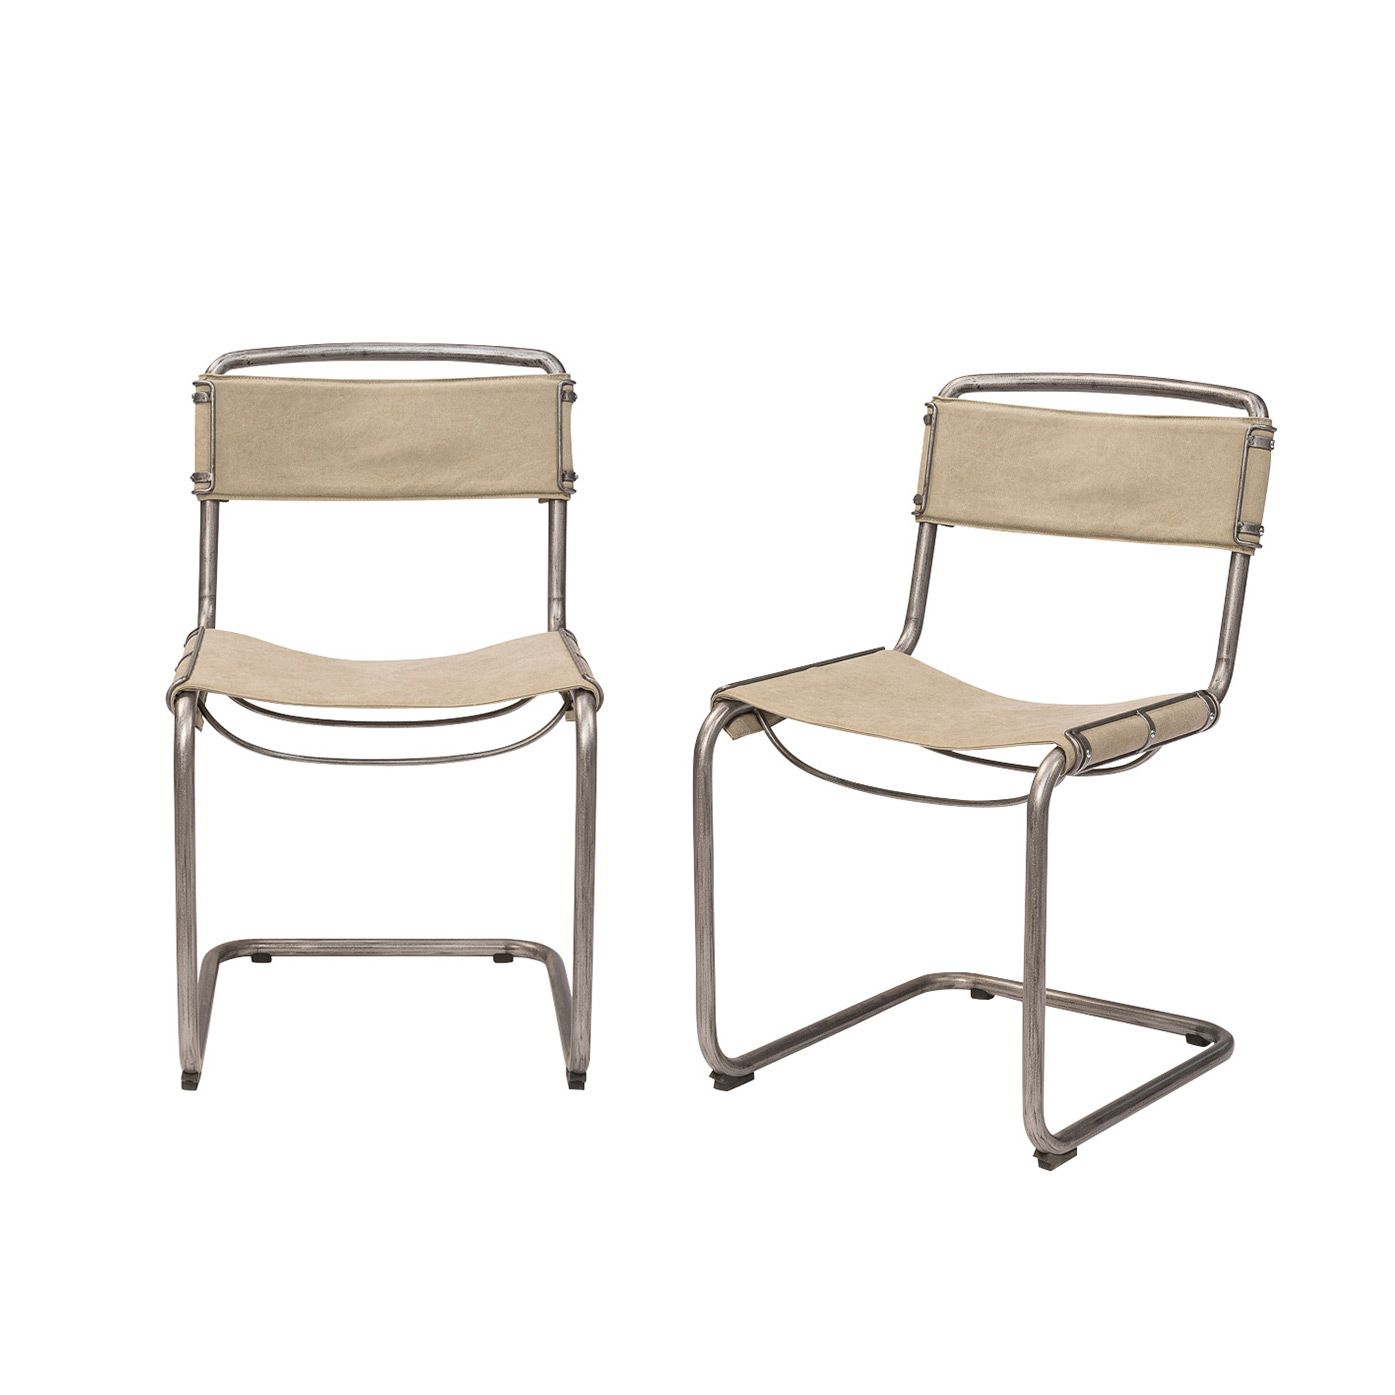 Chair Design Basics Most Expensive Furniture And Decor For The Modern Lifestyle Decorative Things Go Chicly Back To With This Cool Casual Dining Delightfully Crafted From A Curved Stonewashed Metal Base Beige Canvas